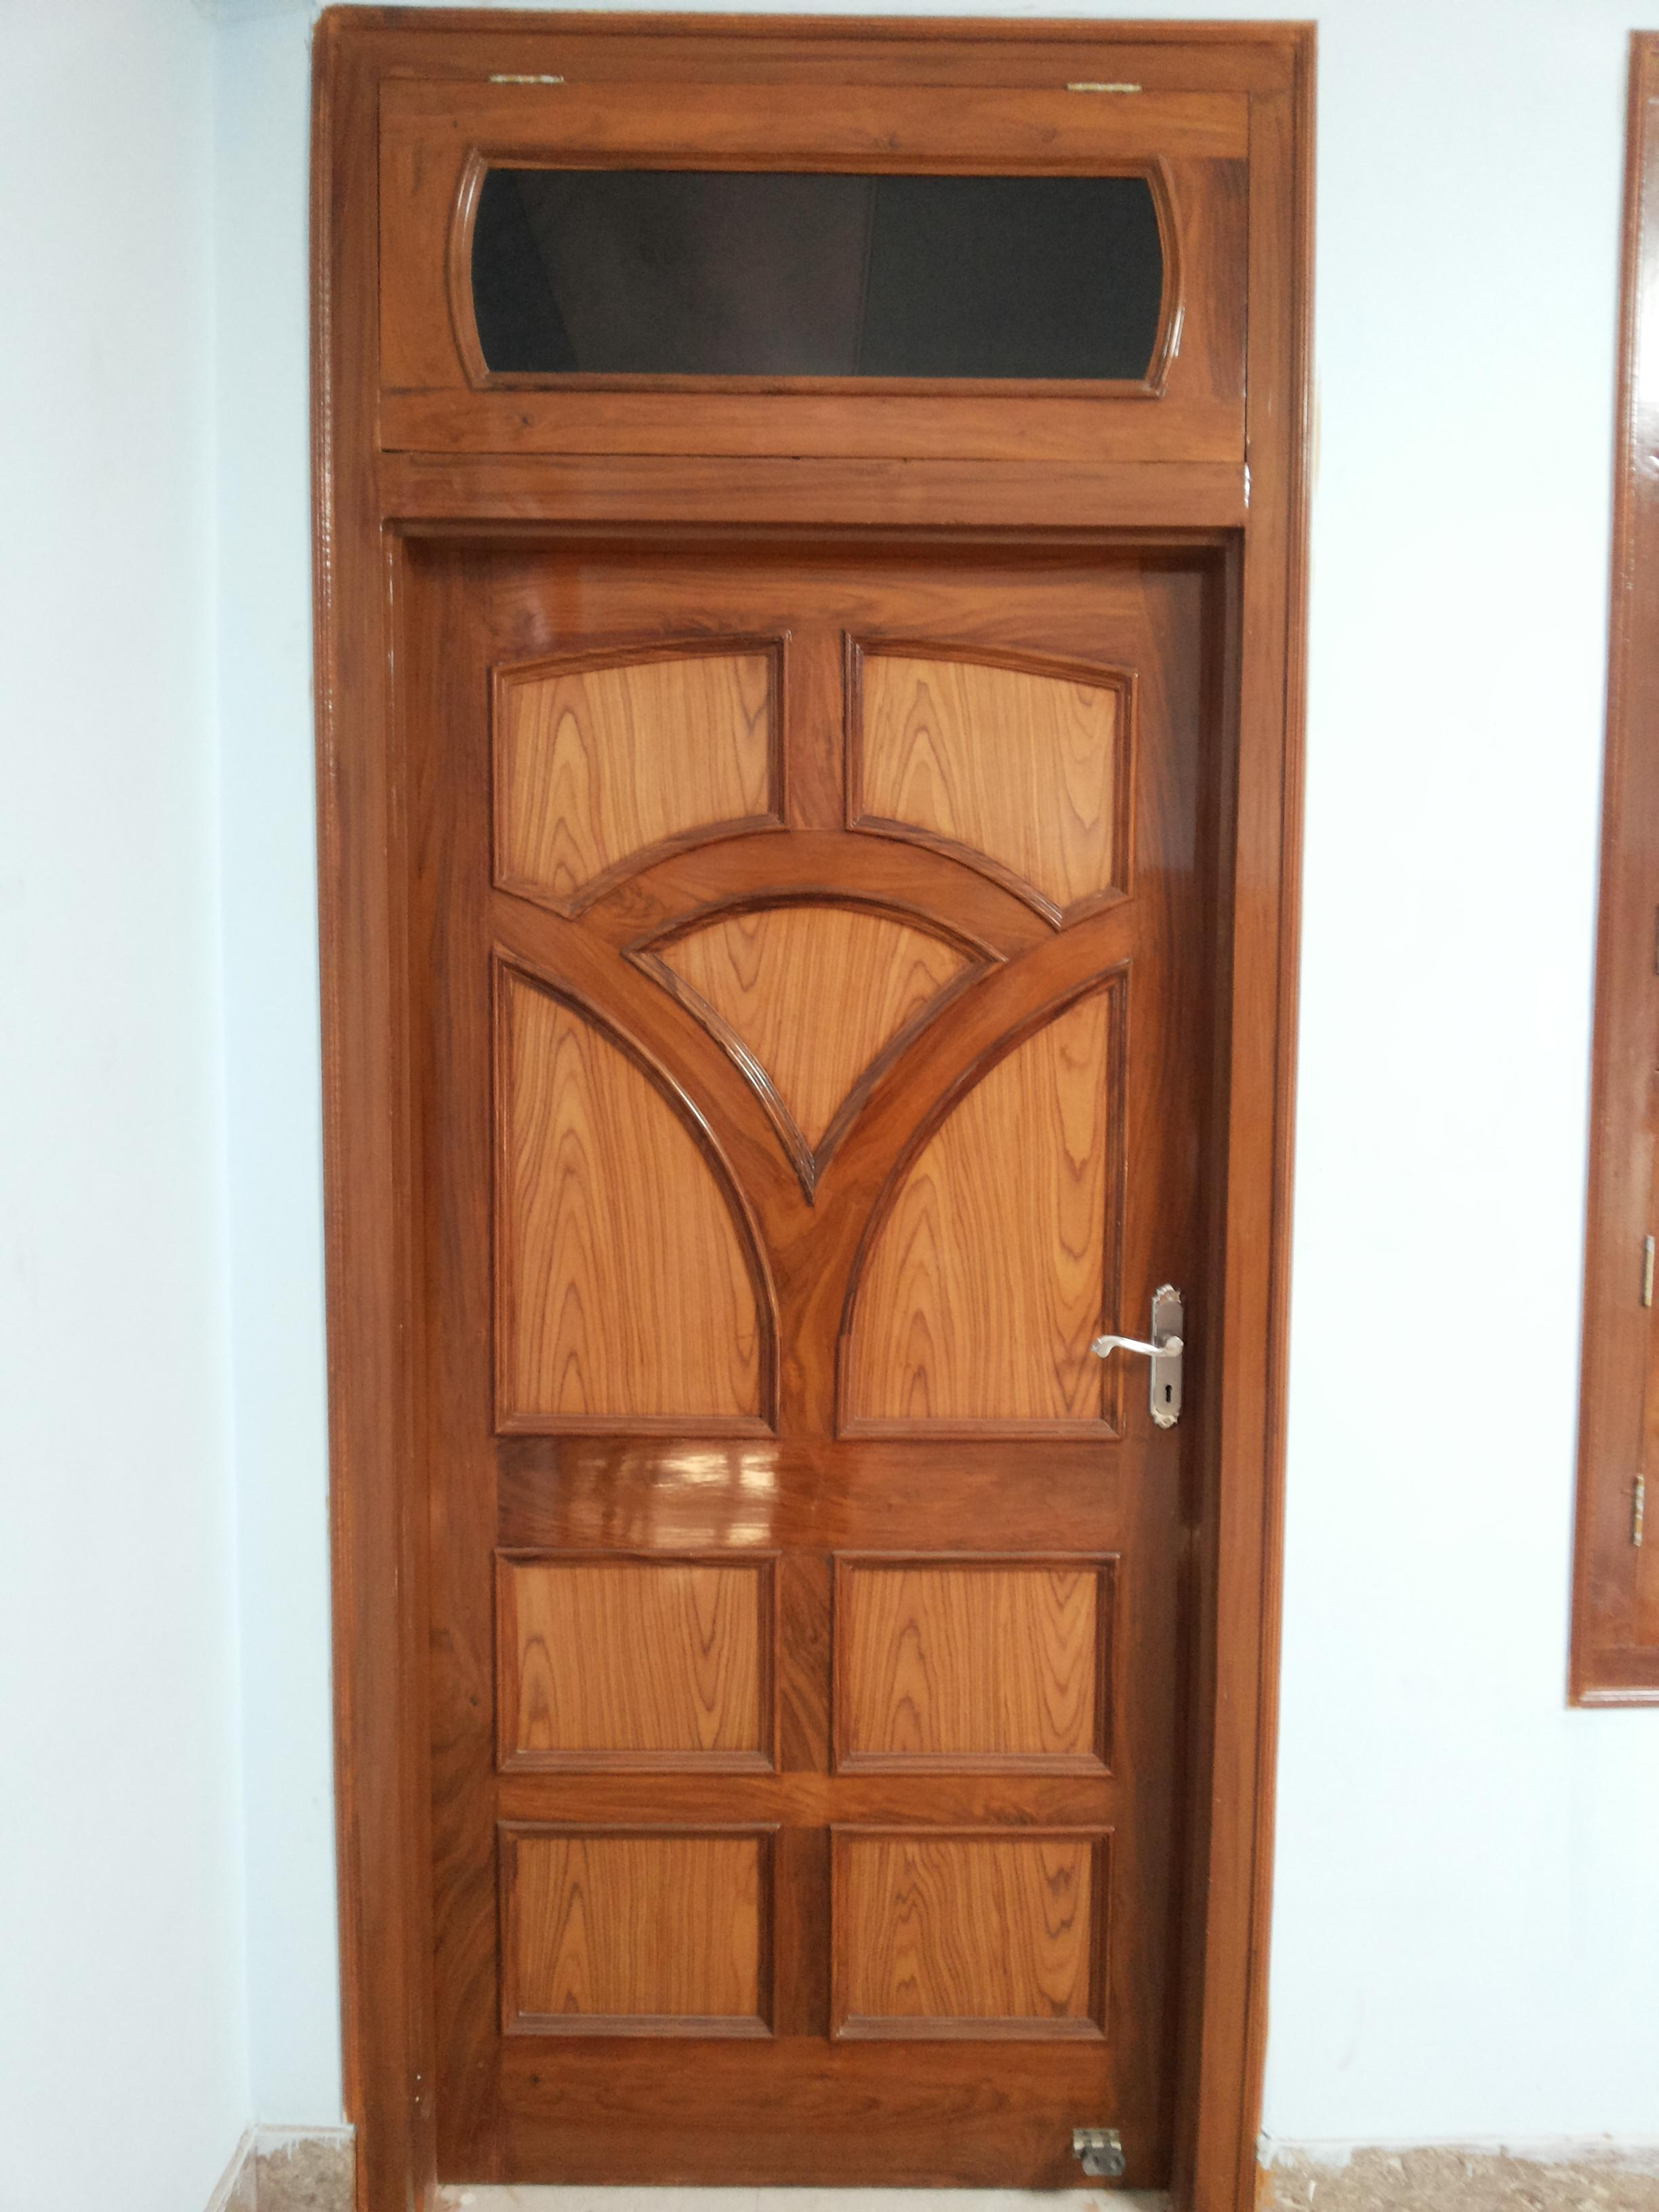 Single panel interior wood door design gharexpert for Modern single front door designs for houses